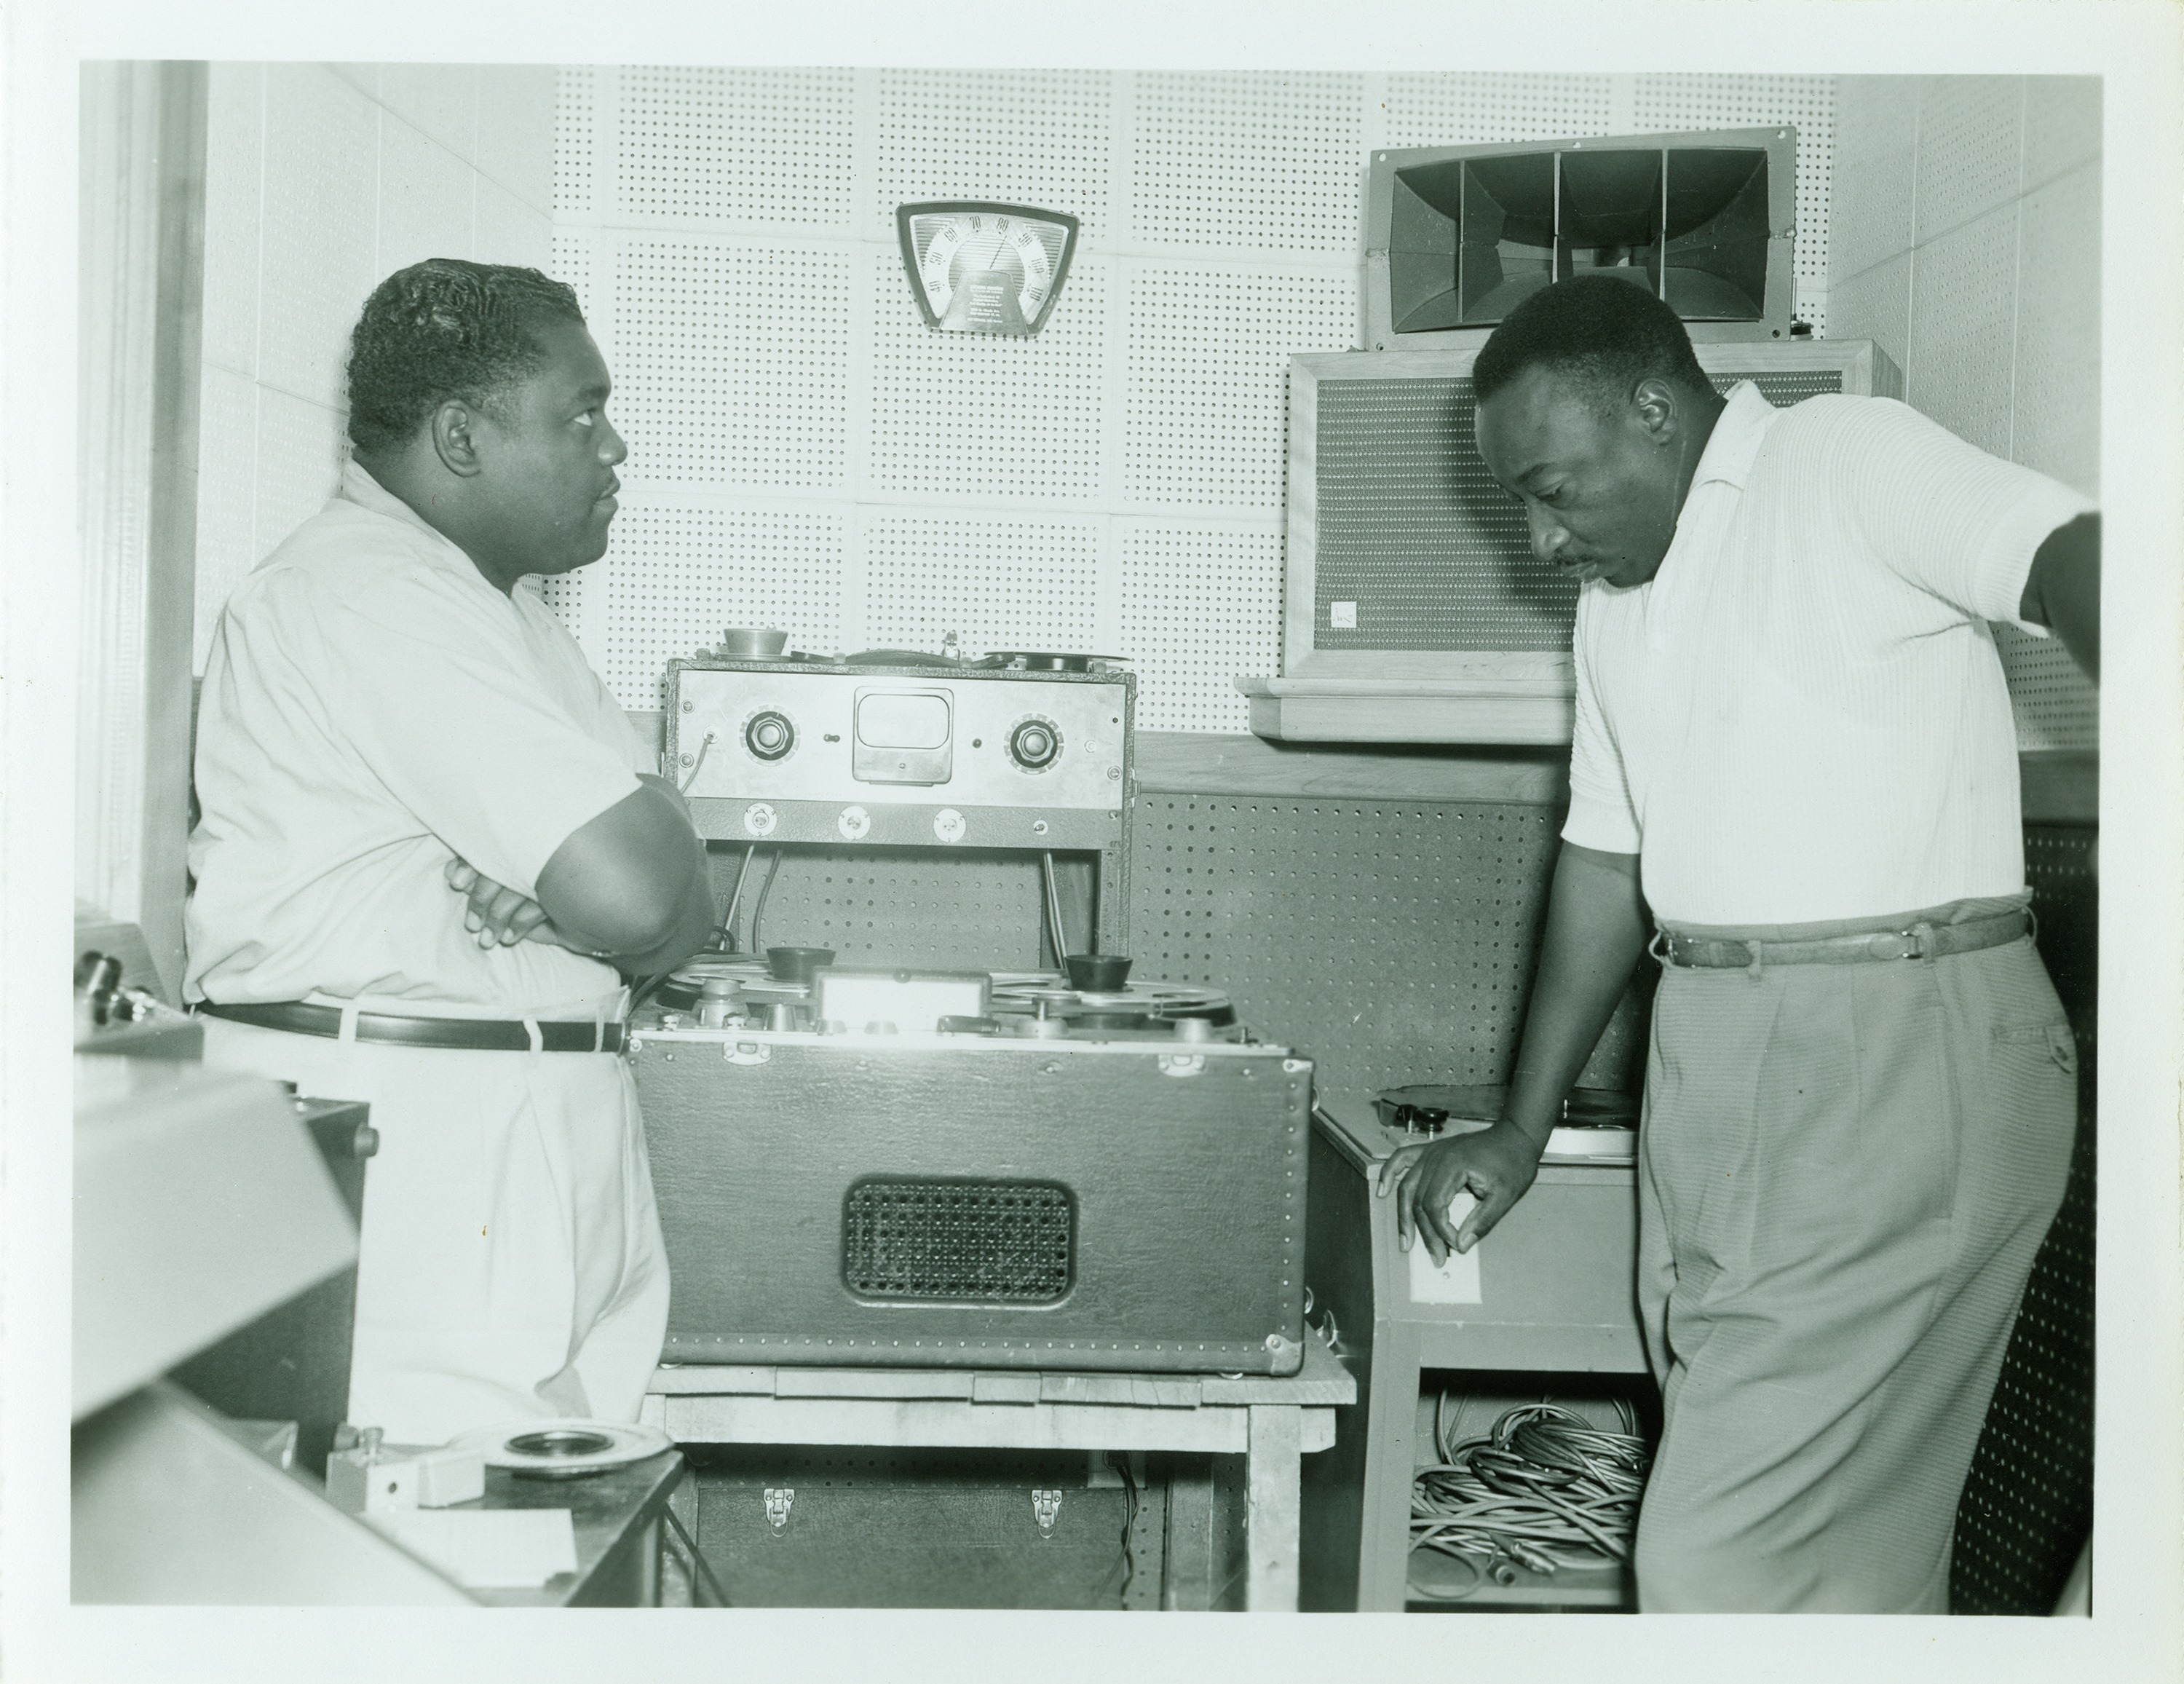 Fats Domino and Dave Bartholomew, August 8, 1957. Photo by Franck-Bertacci Studio. Courtesy of the Charles L. Franck Studio Collection at The Historic New Orleans Collection.